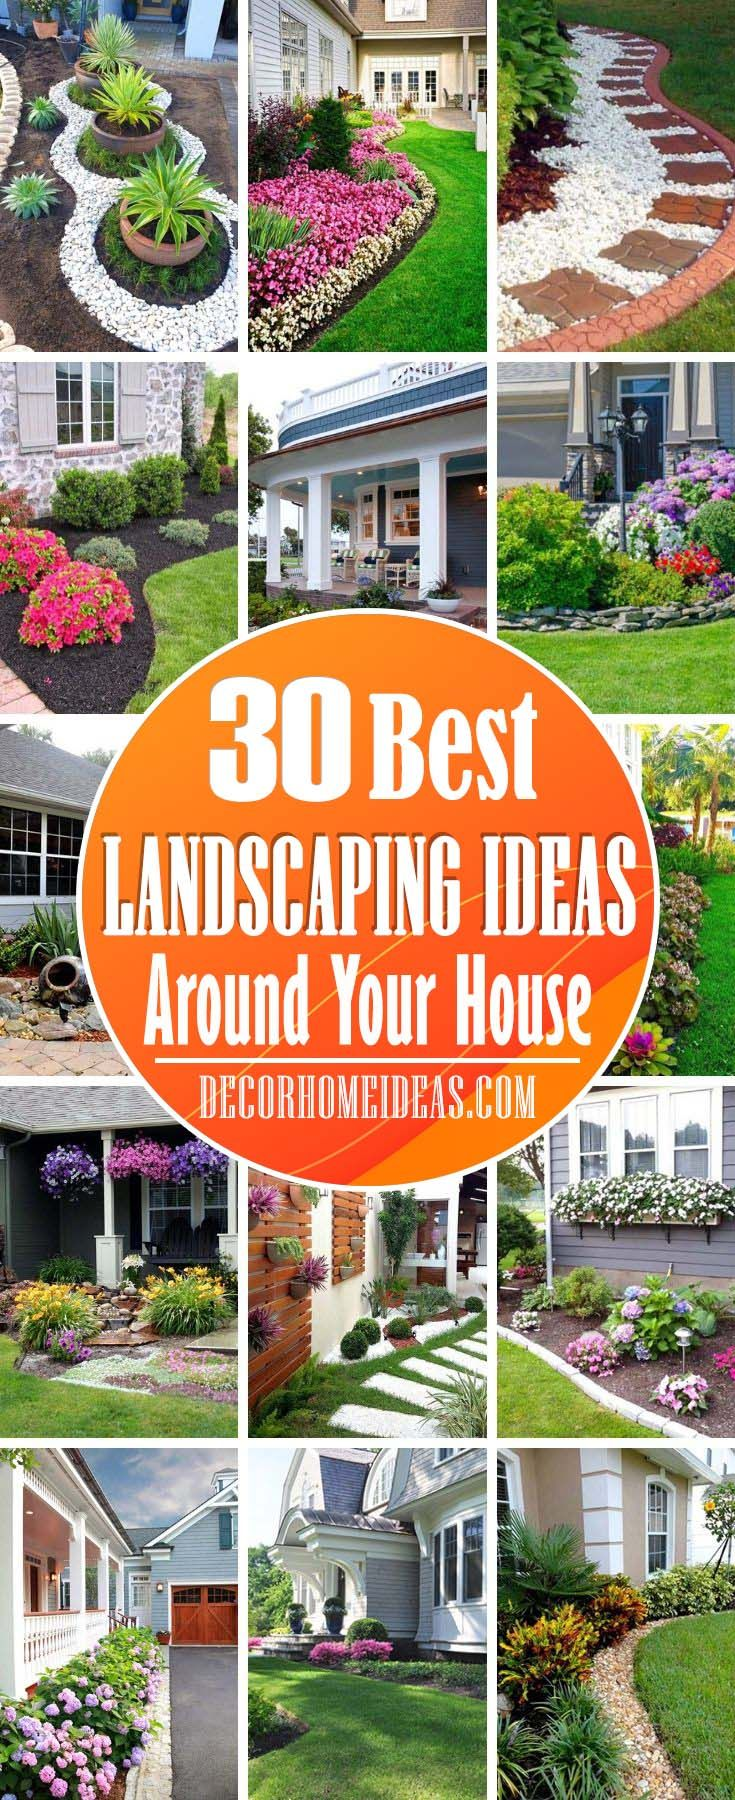 30 Best Landscaping Ideas Around Your House Decor Home Ideas Front Yard Landscaping Design Outdoor Gardens Landscaping Backyard Landscaping New house backyard ideas